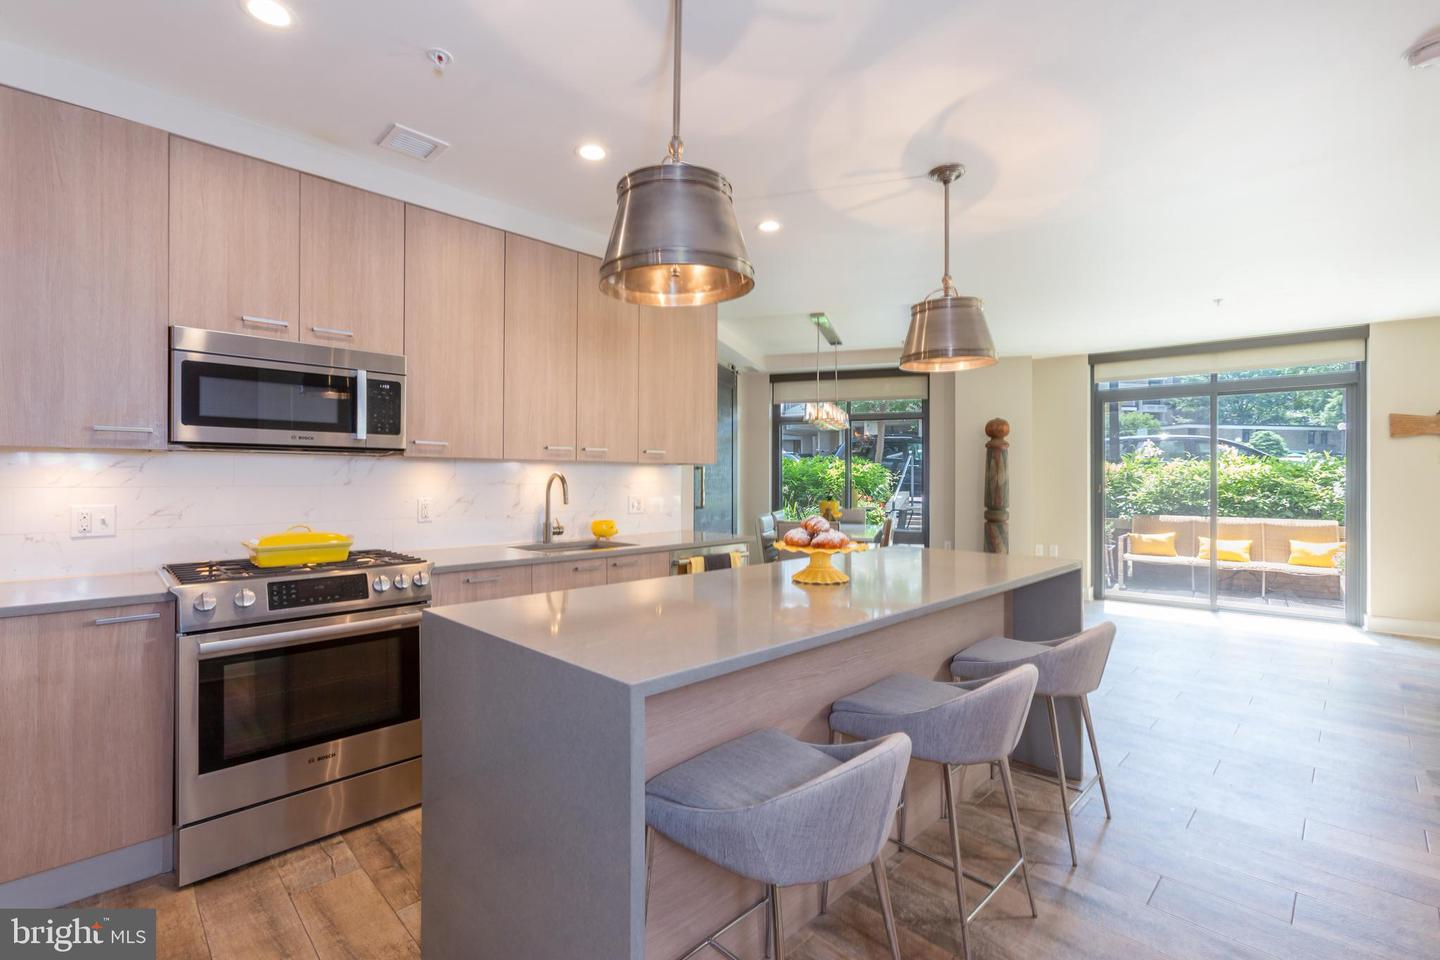 Single Family for Sale at 525 Water St SW #110 525 Water St SW #110 Washington, District Of Columbia 20024 United States